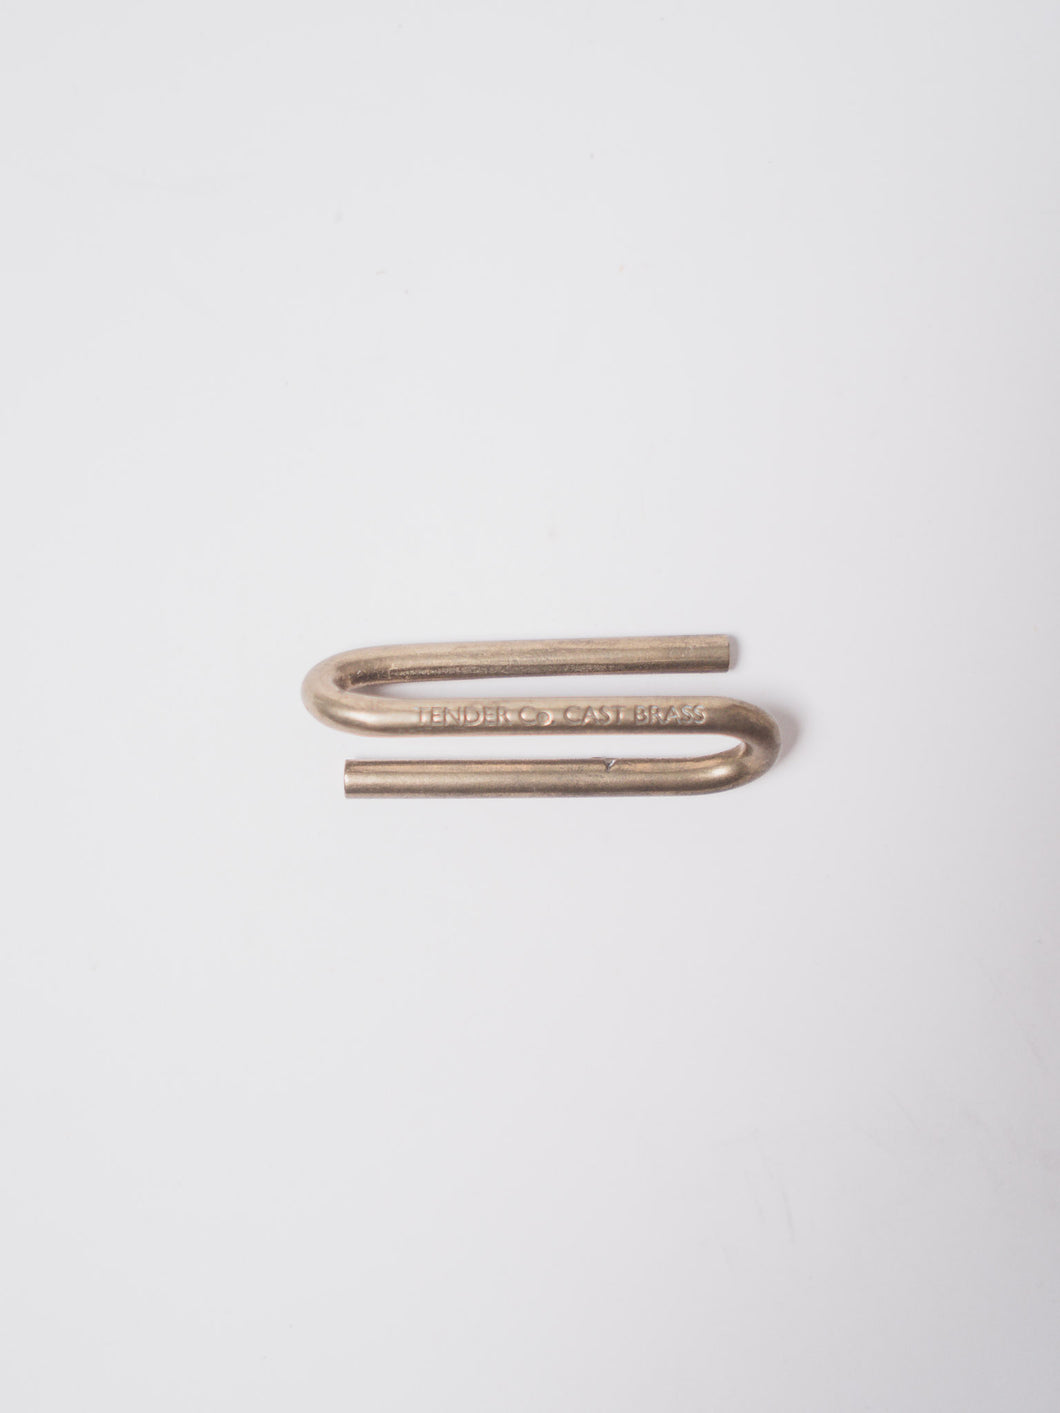 TENDER BRASS KEY HOOK